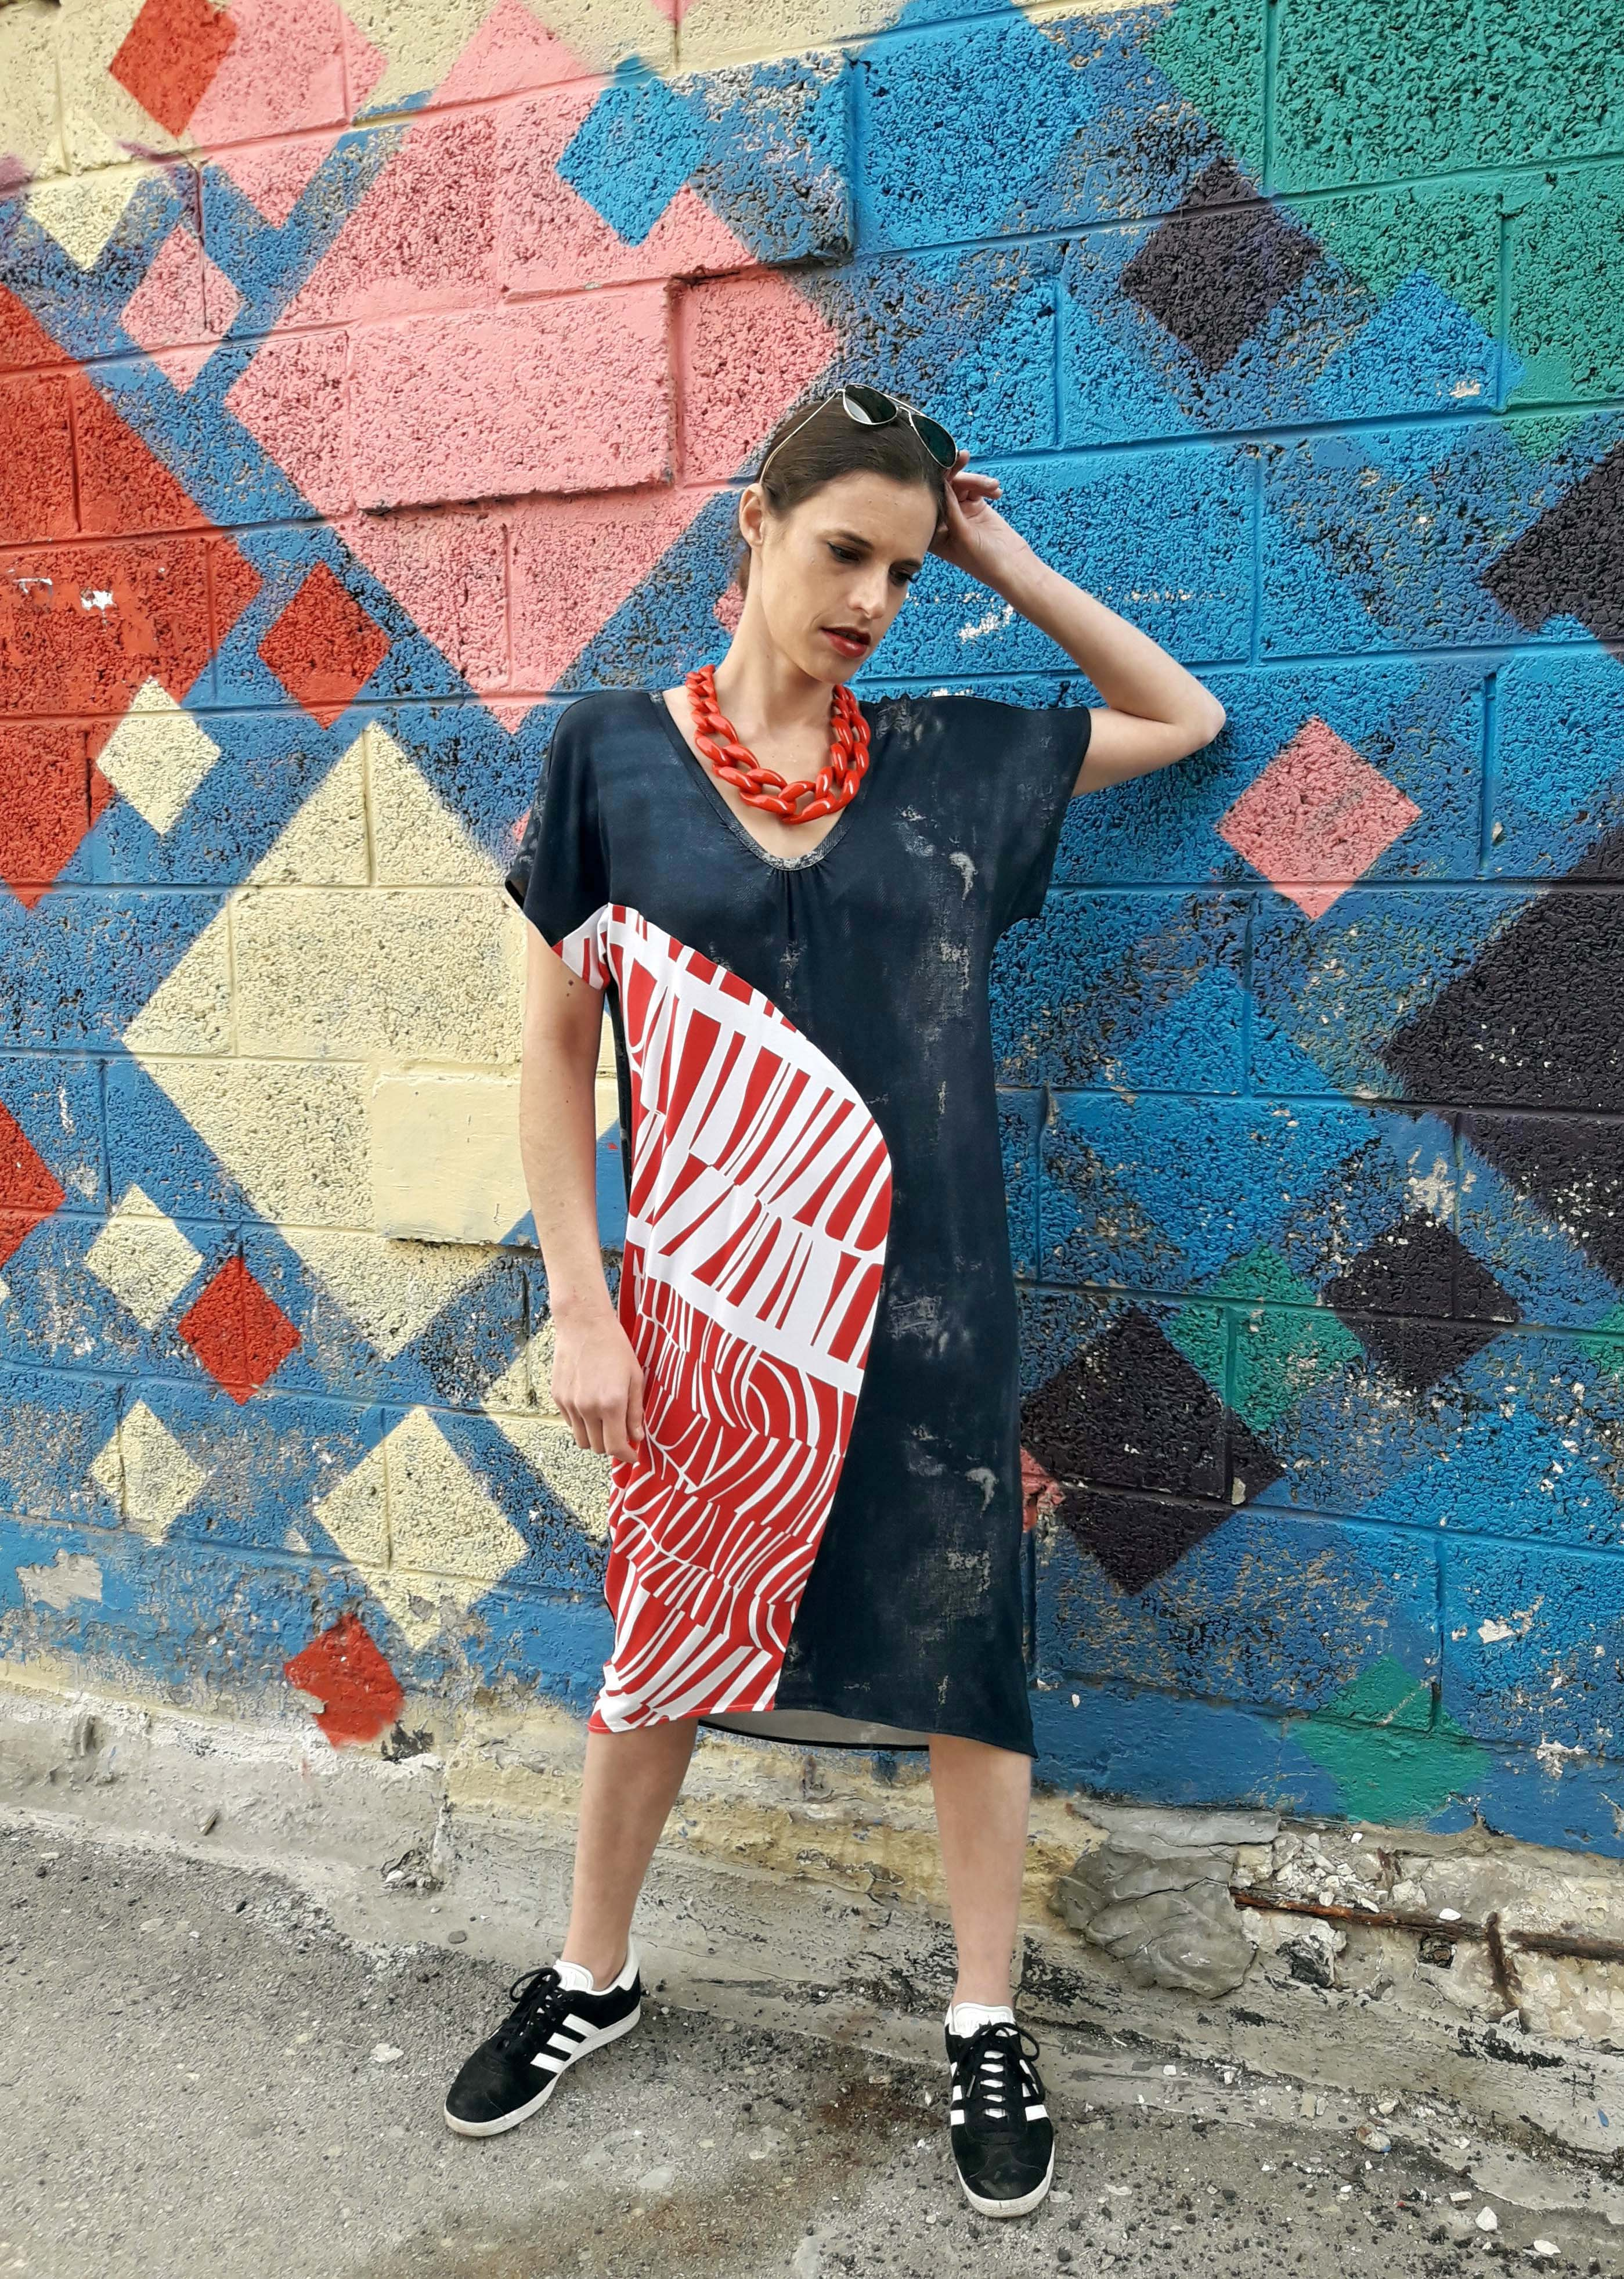 tamar ziv - asymmetric jeans dress